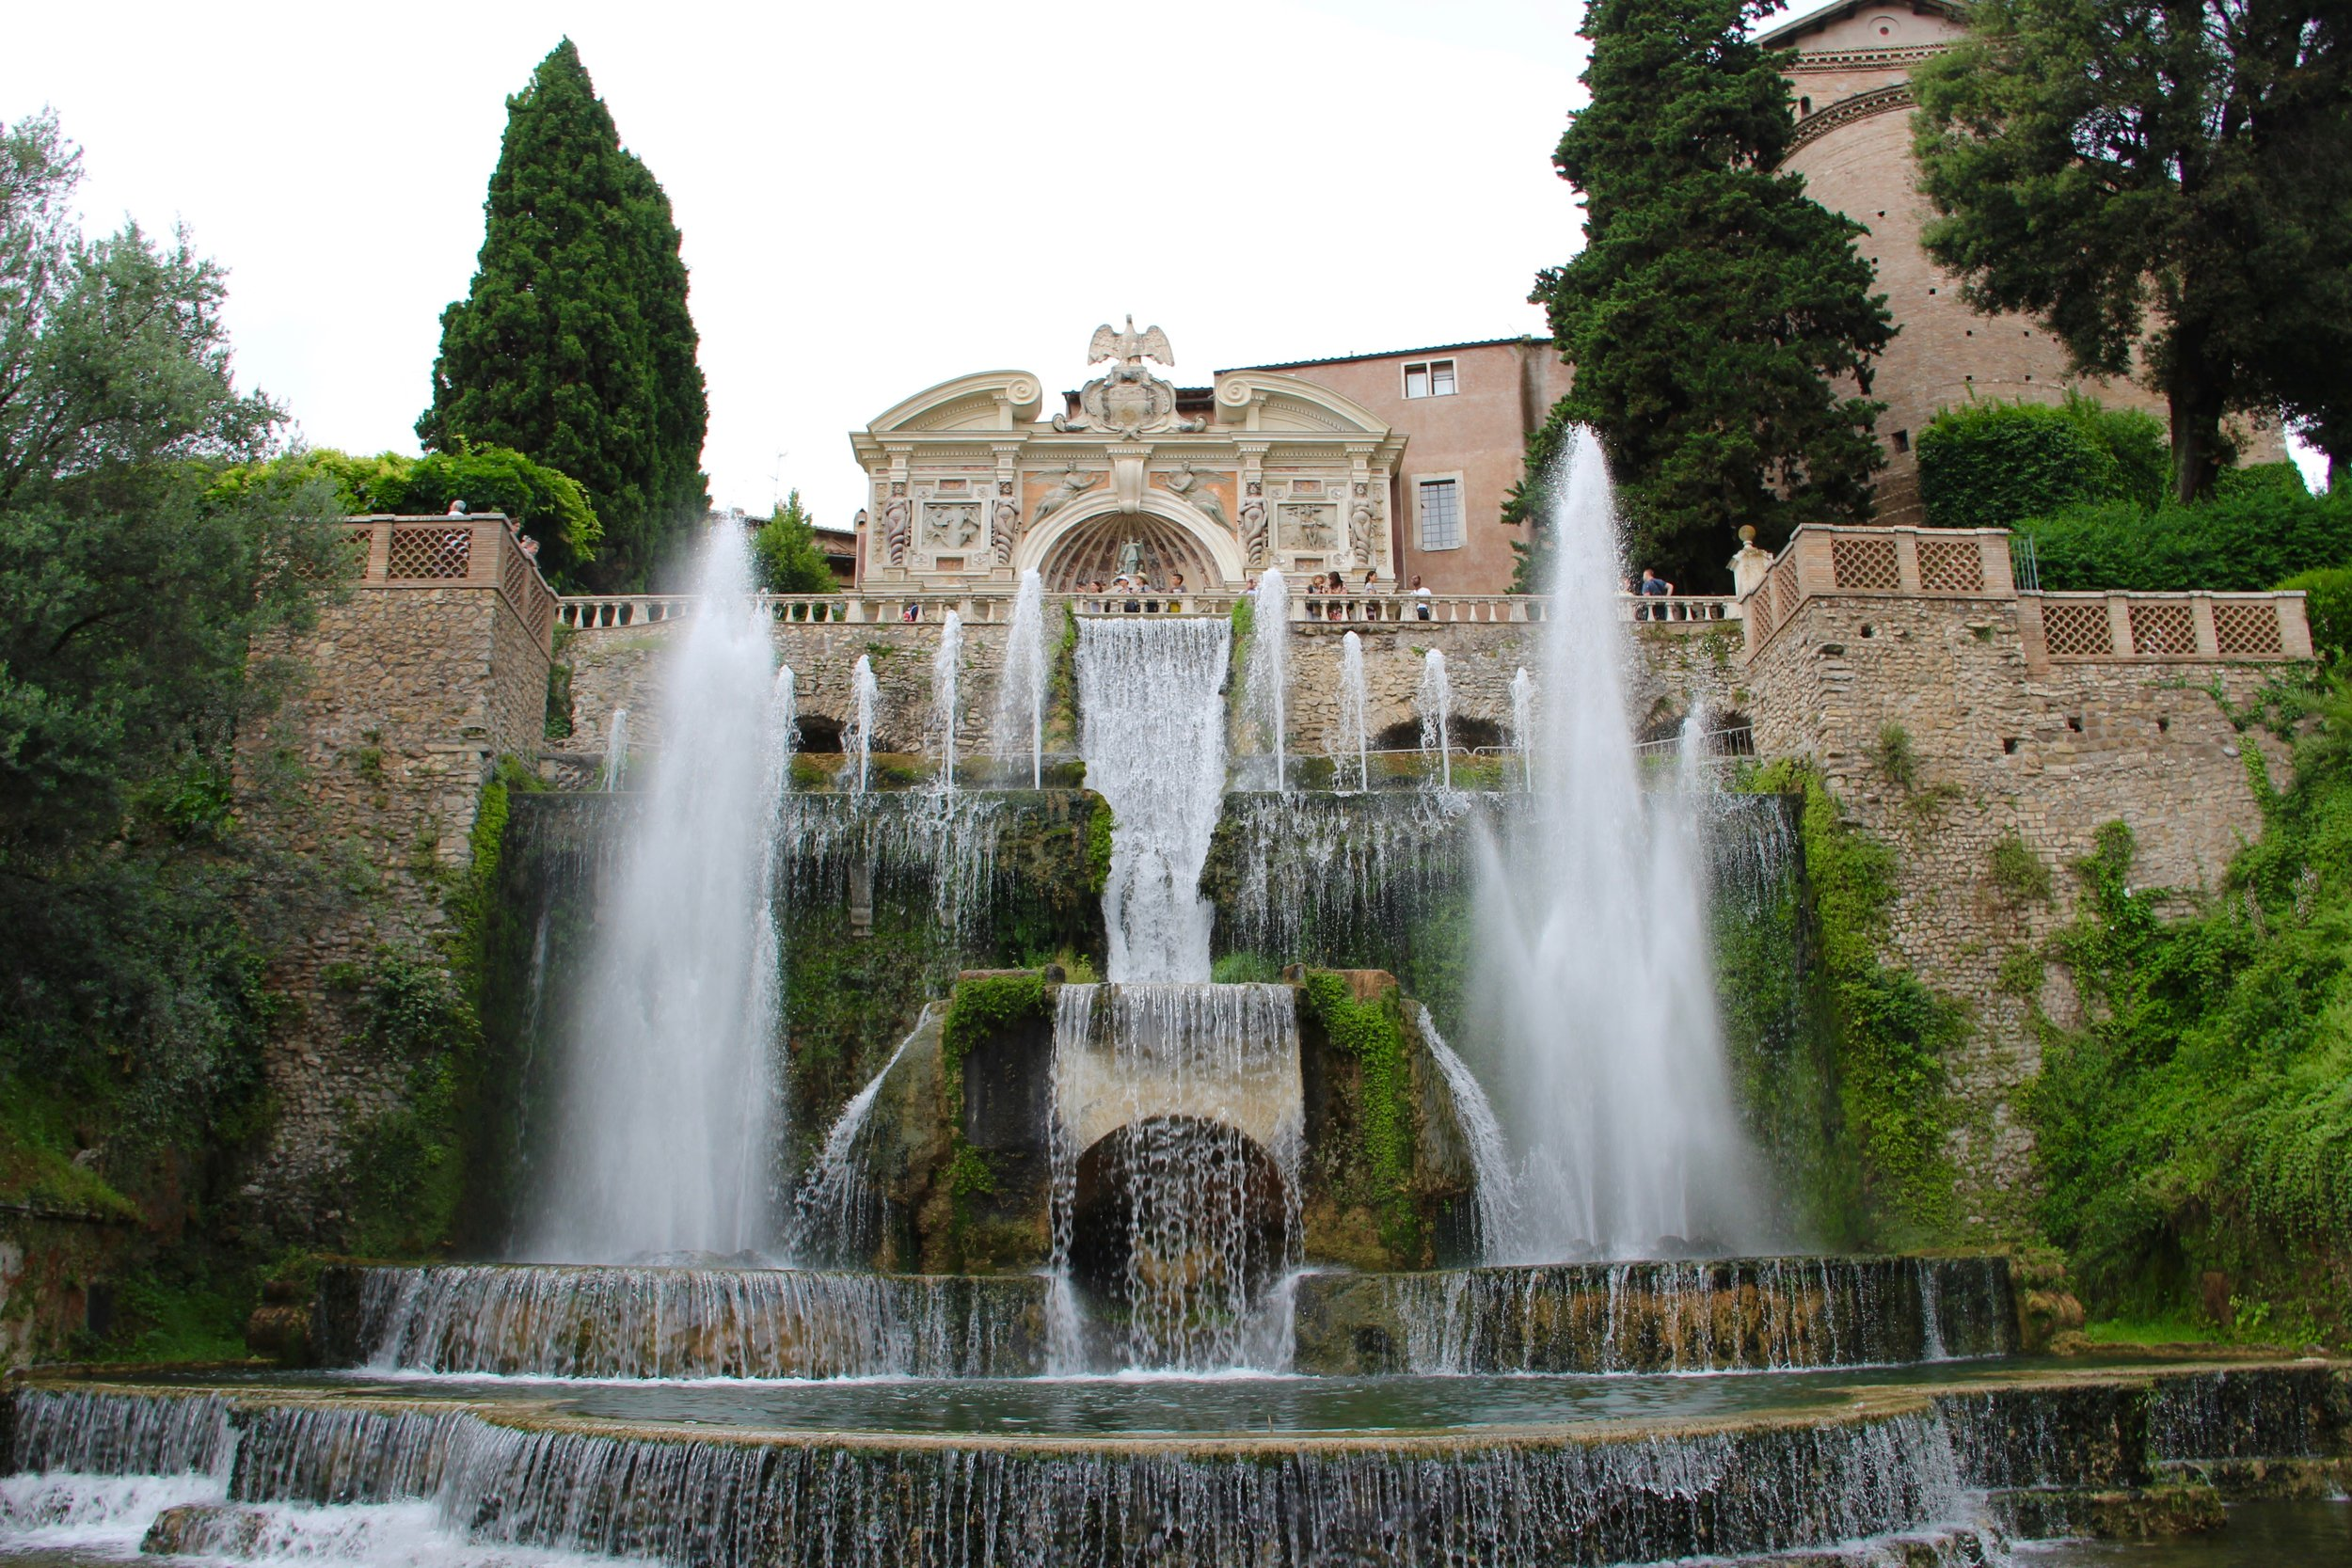 One of the hundreds of fountains at Villa D'Este